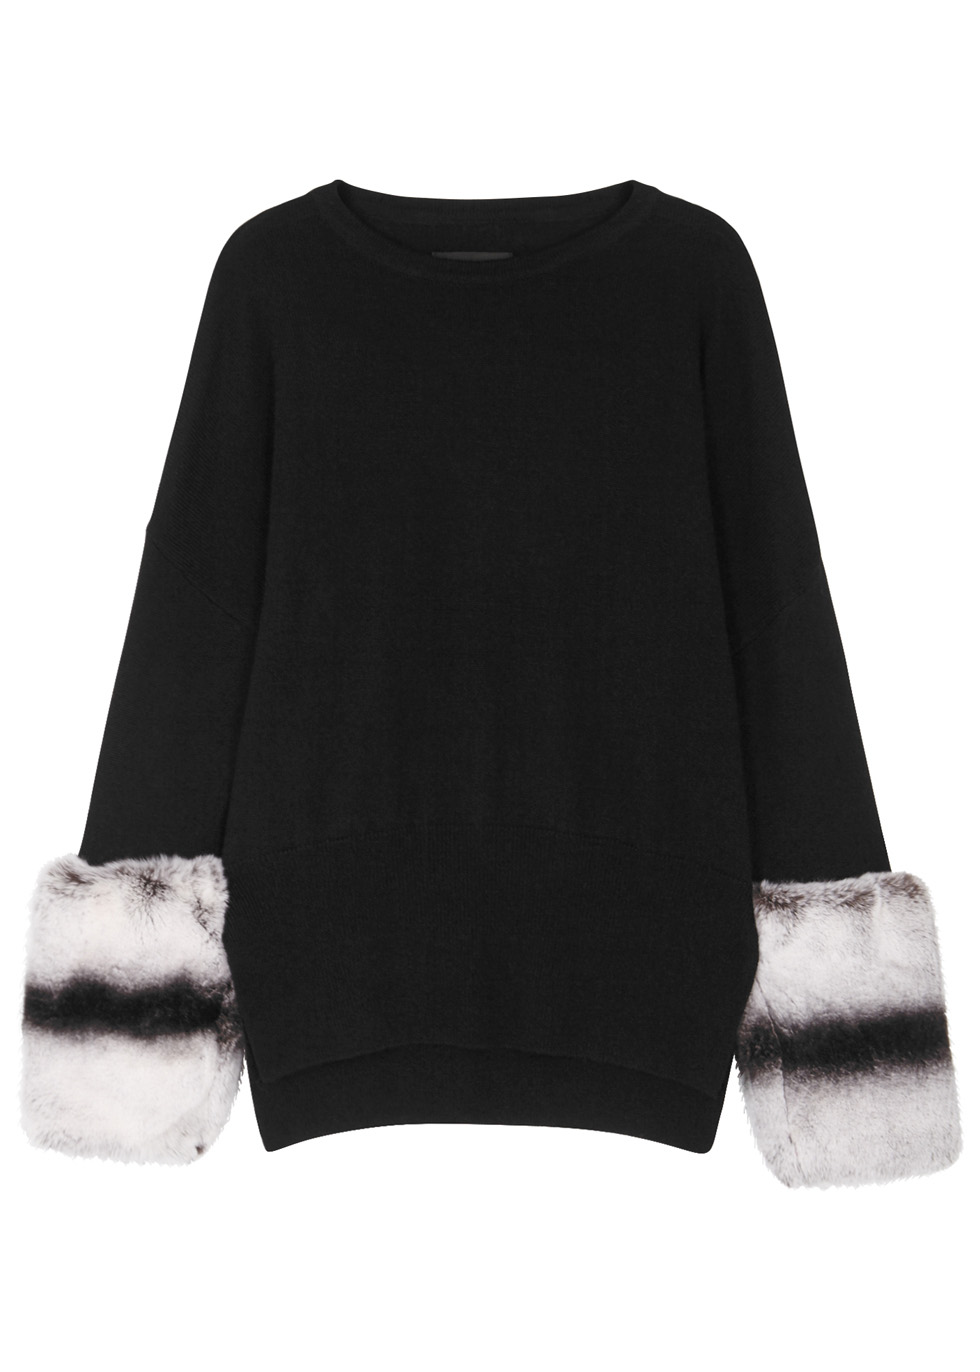 IZAAK AZANEI FUR-TRIMMED WOOL-BLEND JUMPER